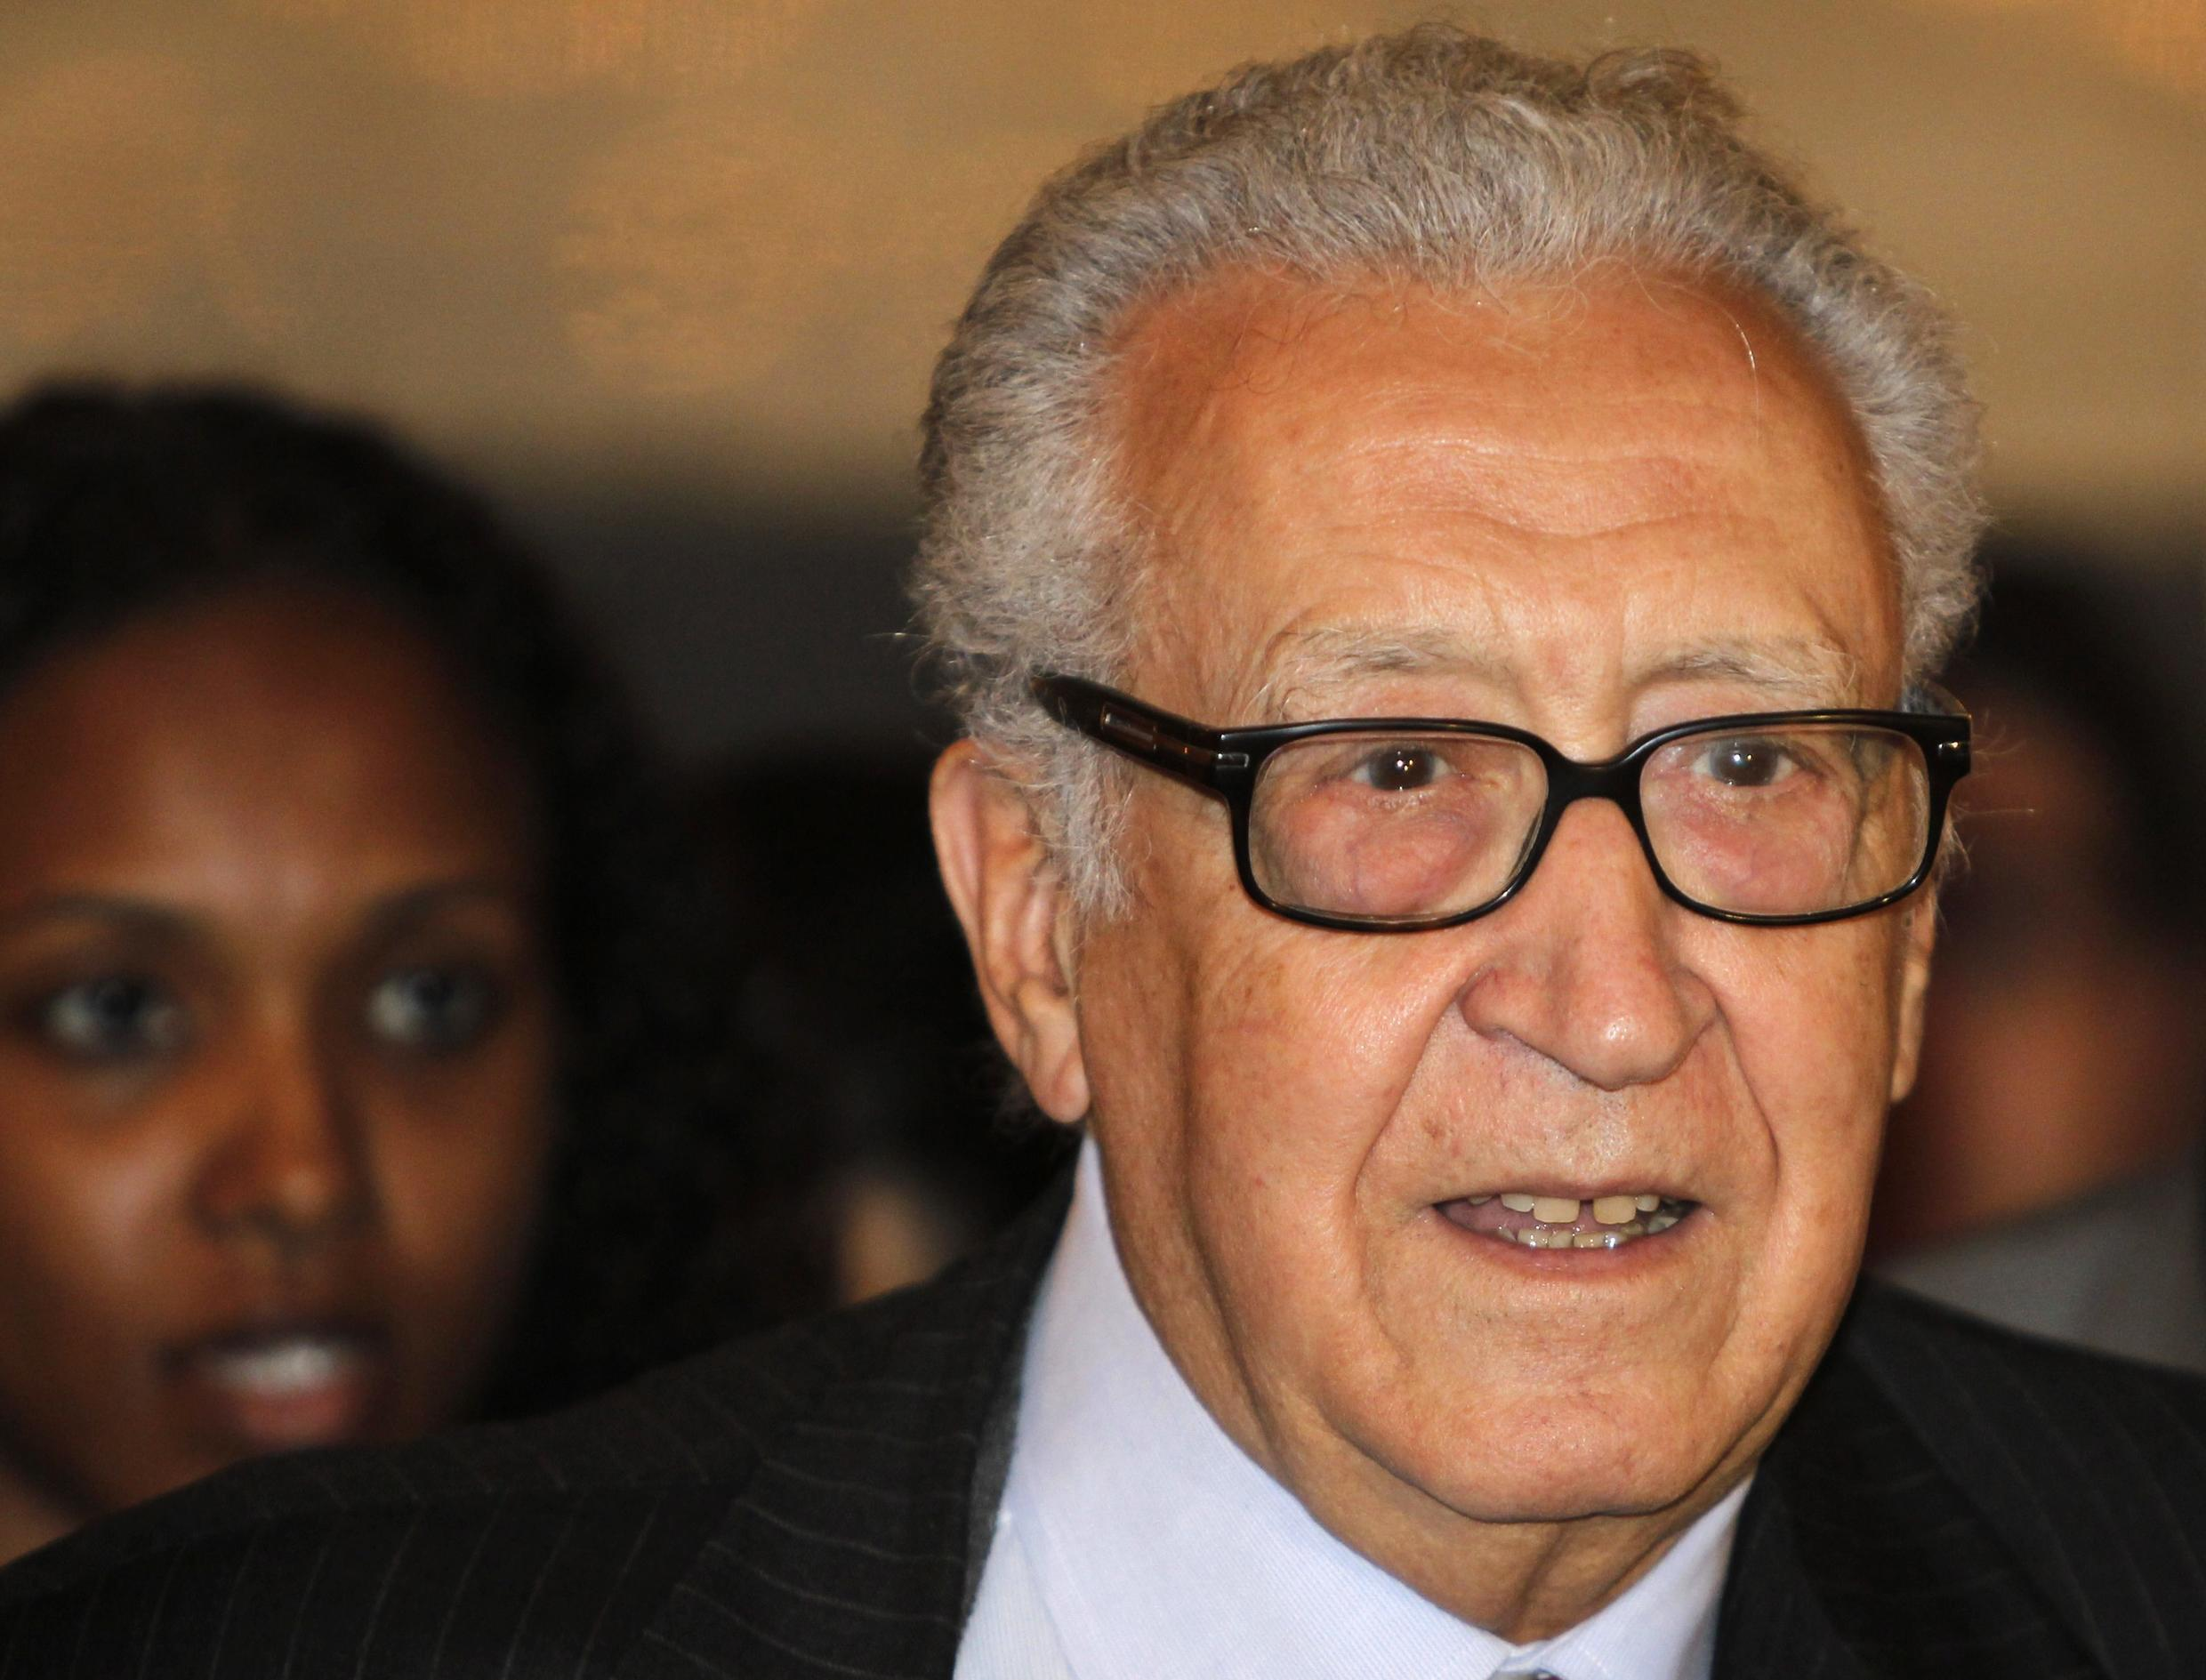 Lakhdar Brahimi has called for a transitional government to be formed in Syria.